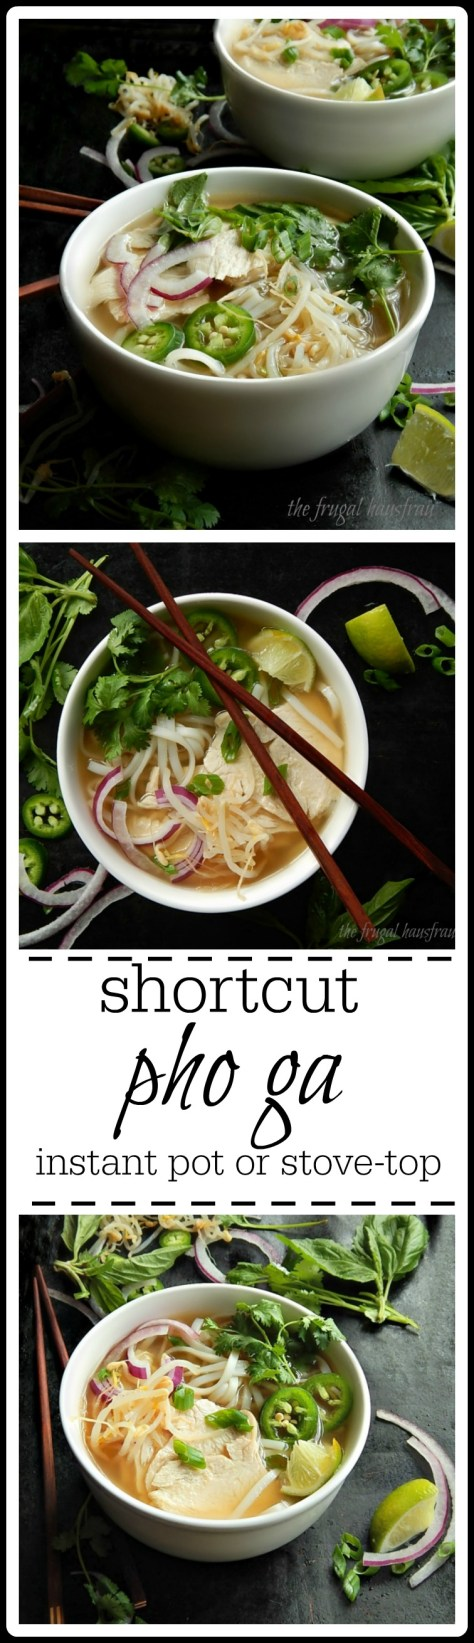 Pho Ga Quick & easy - shortcut from your Thanksgiving leftovers or make with leftover or poached chicken